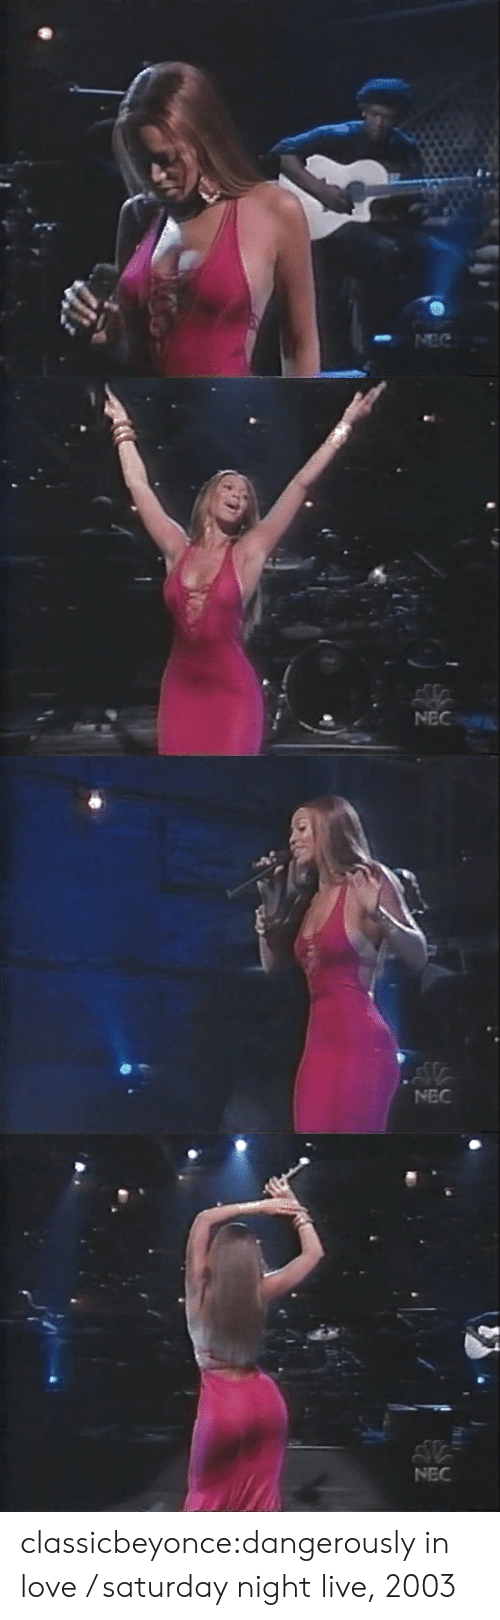 nec: NEC   l in  NEC   NEC classicbeyonce:dangerously in love / saturday night live, 2003